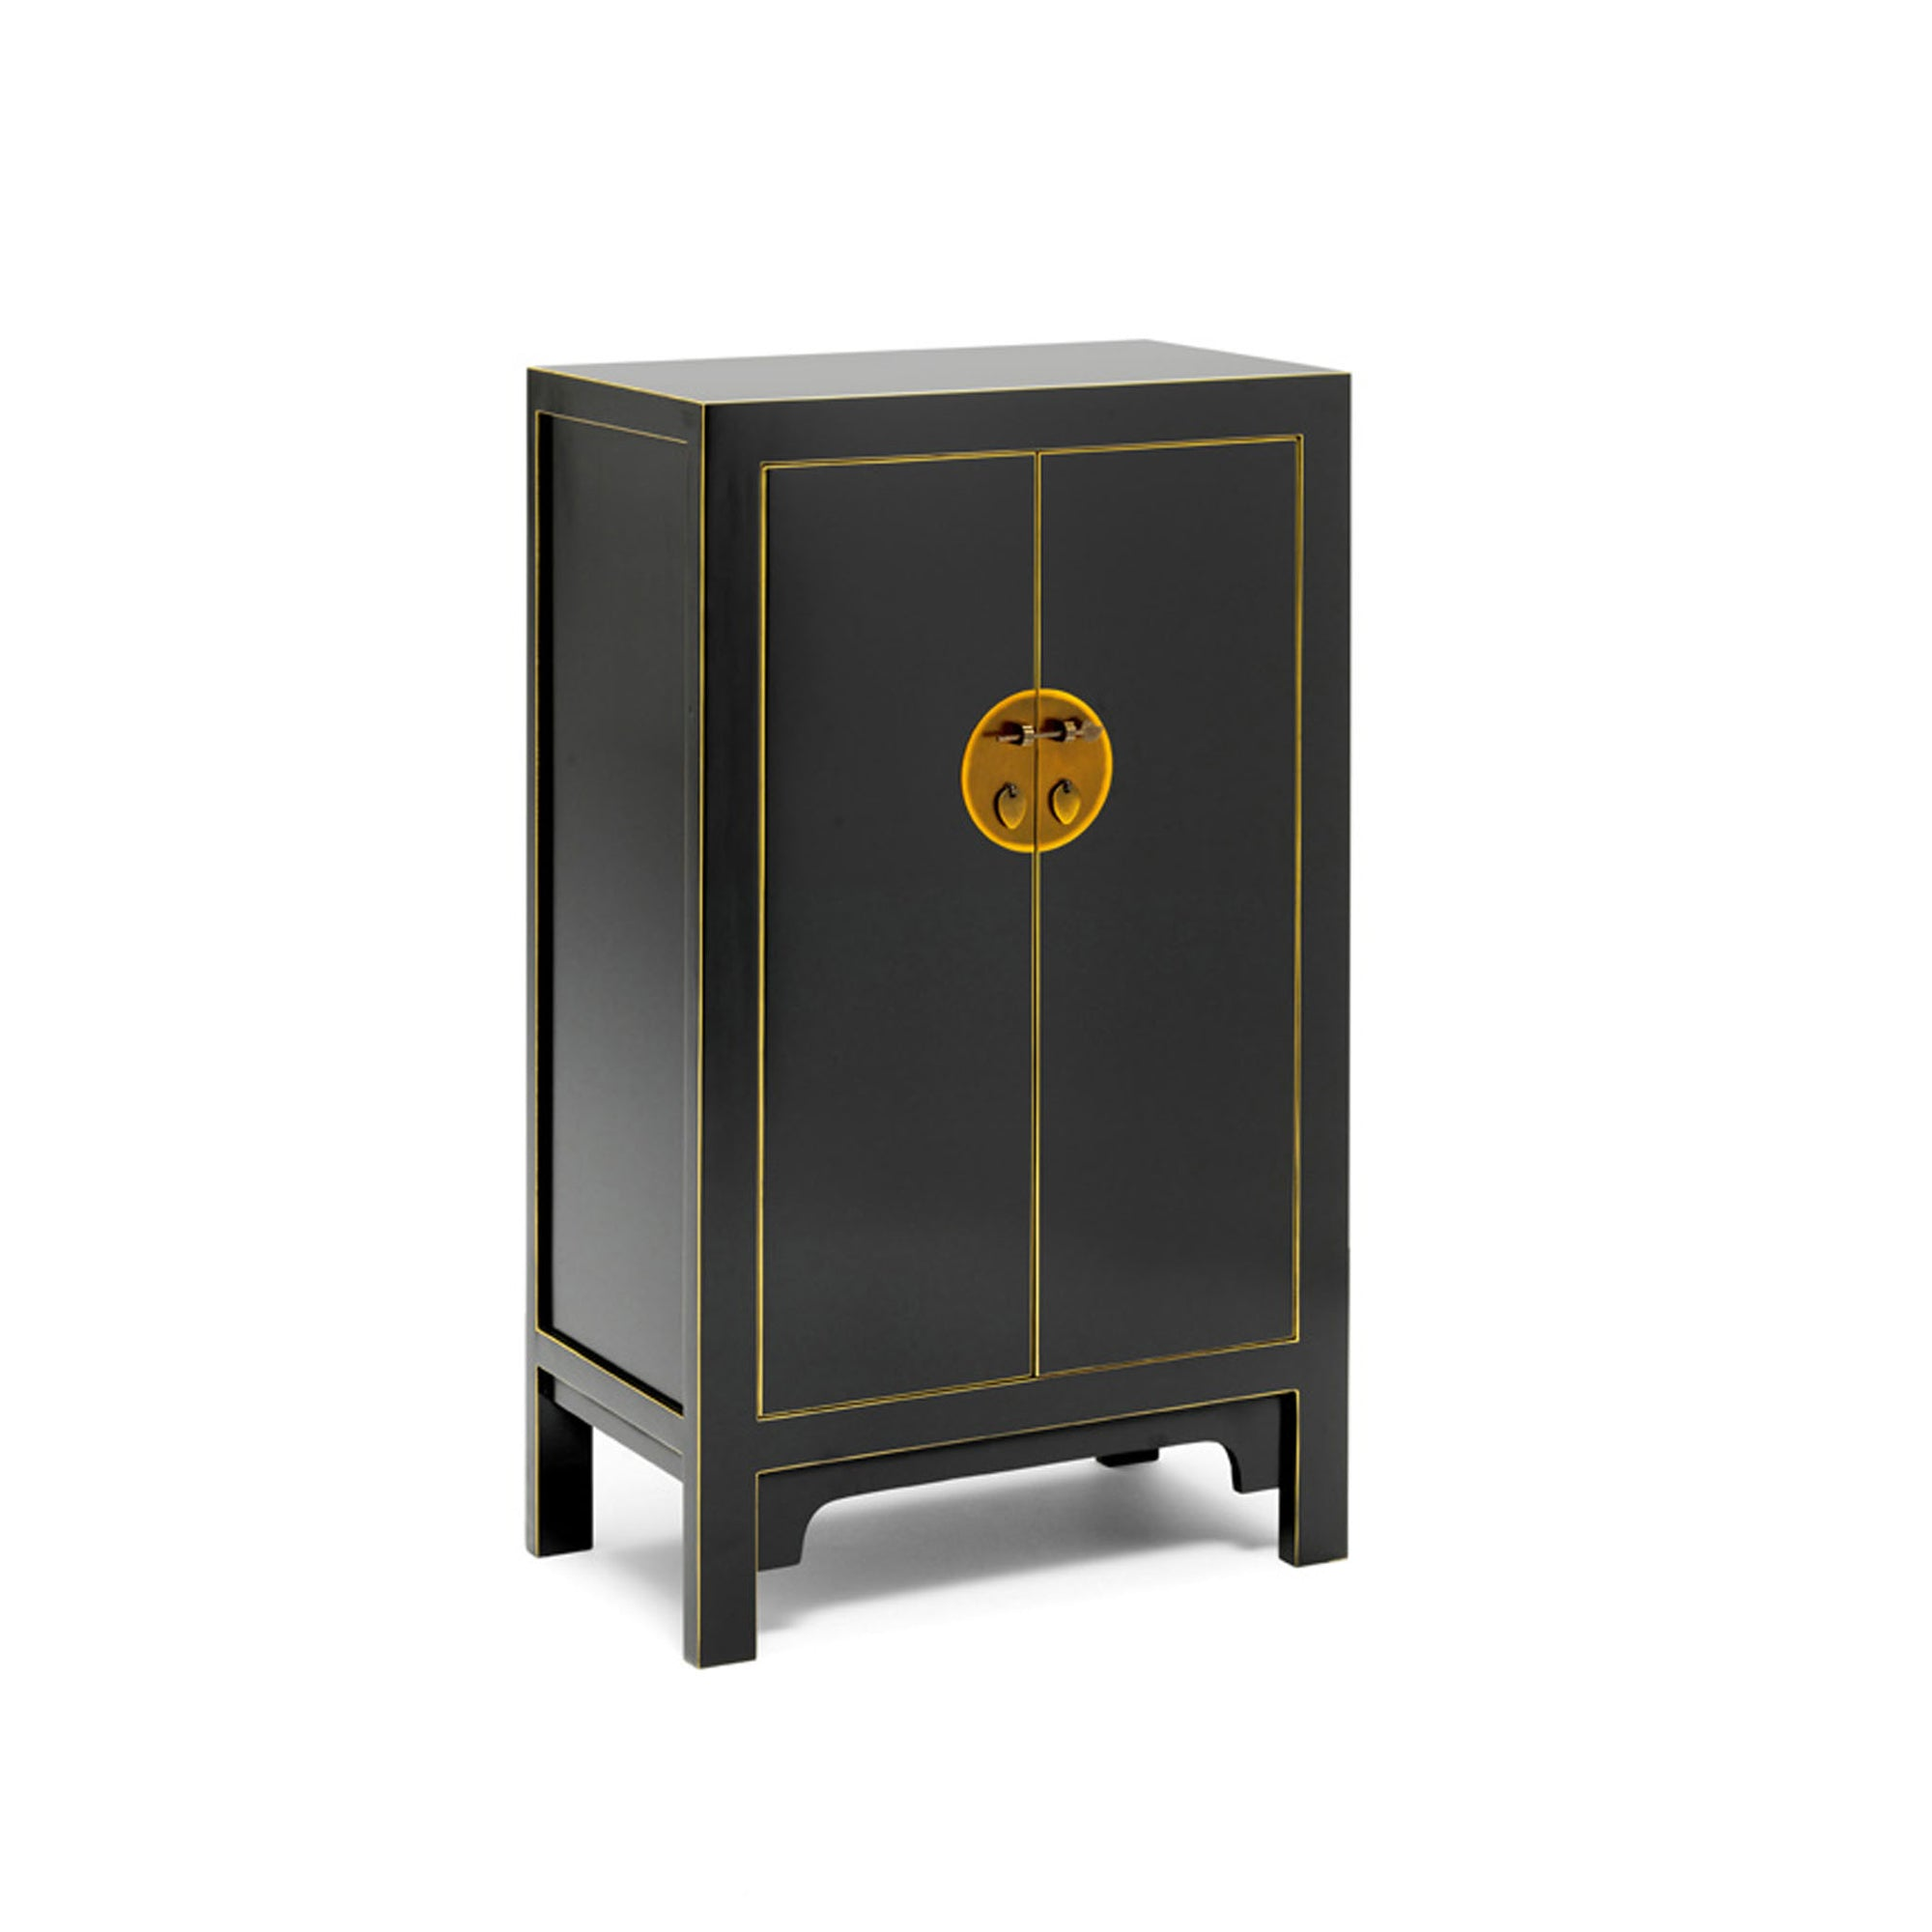 The Nine Schools Qing Black and Gilt Medium Cabinet by Roseland Furniture